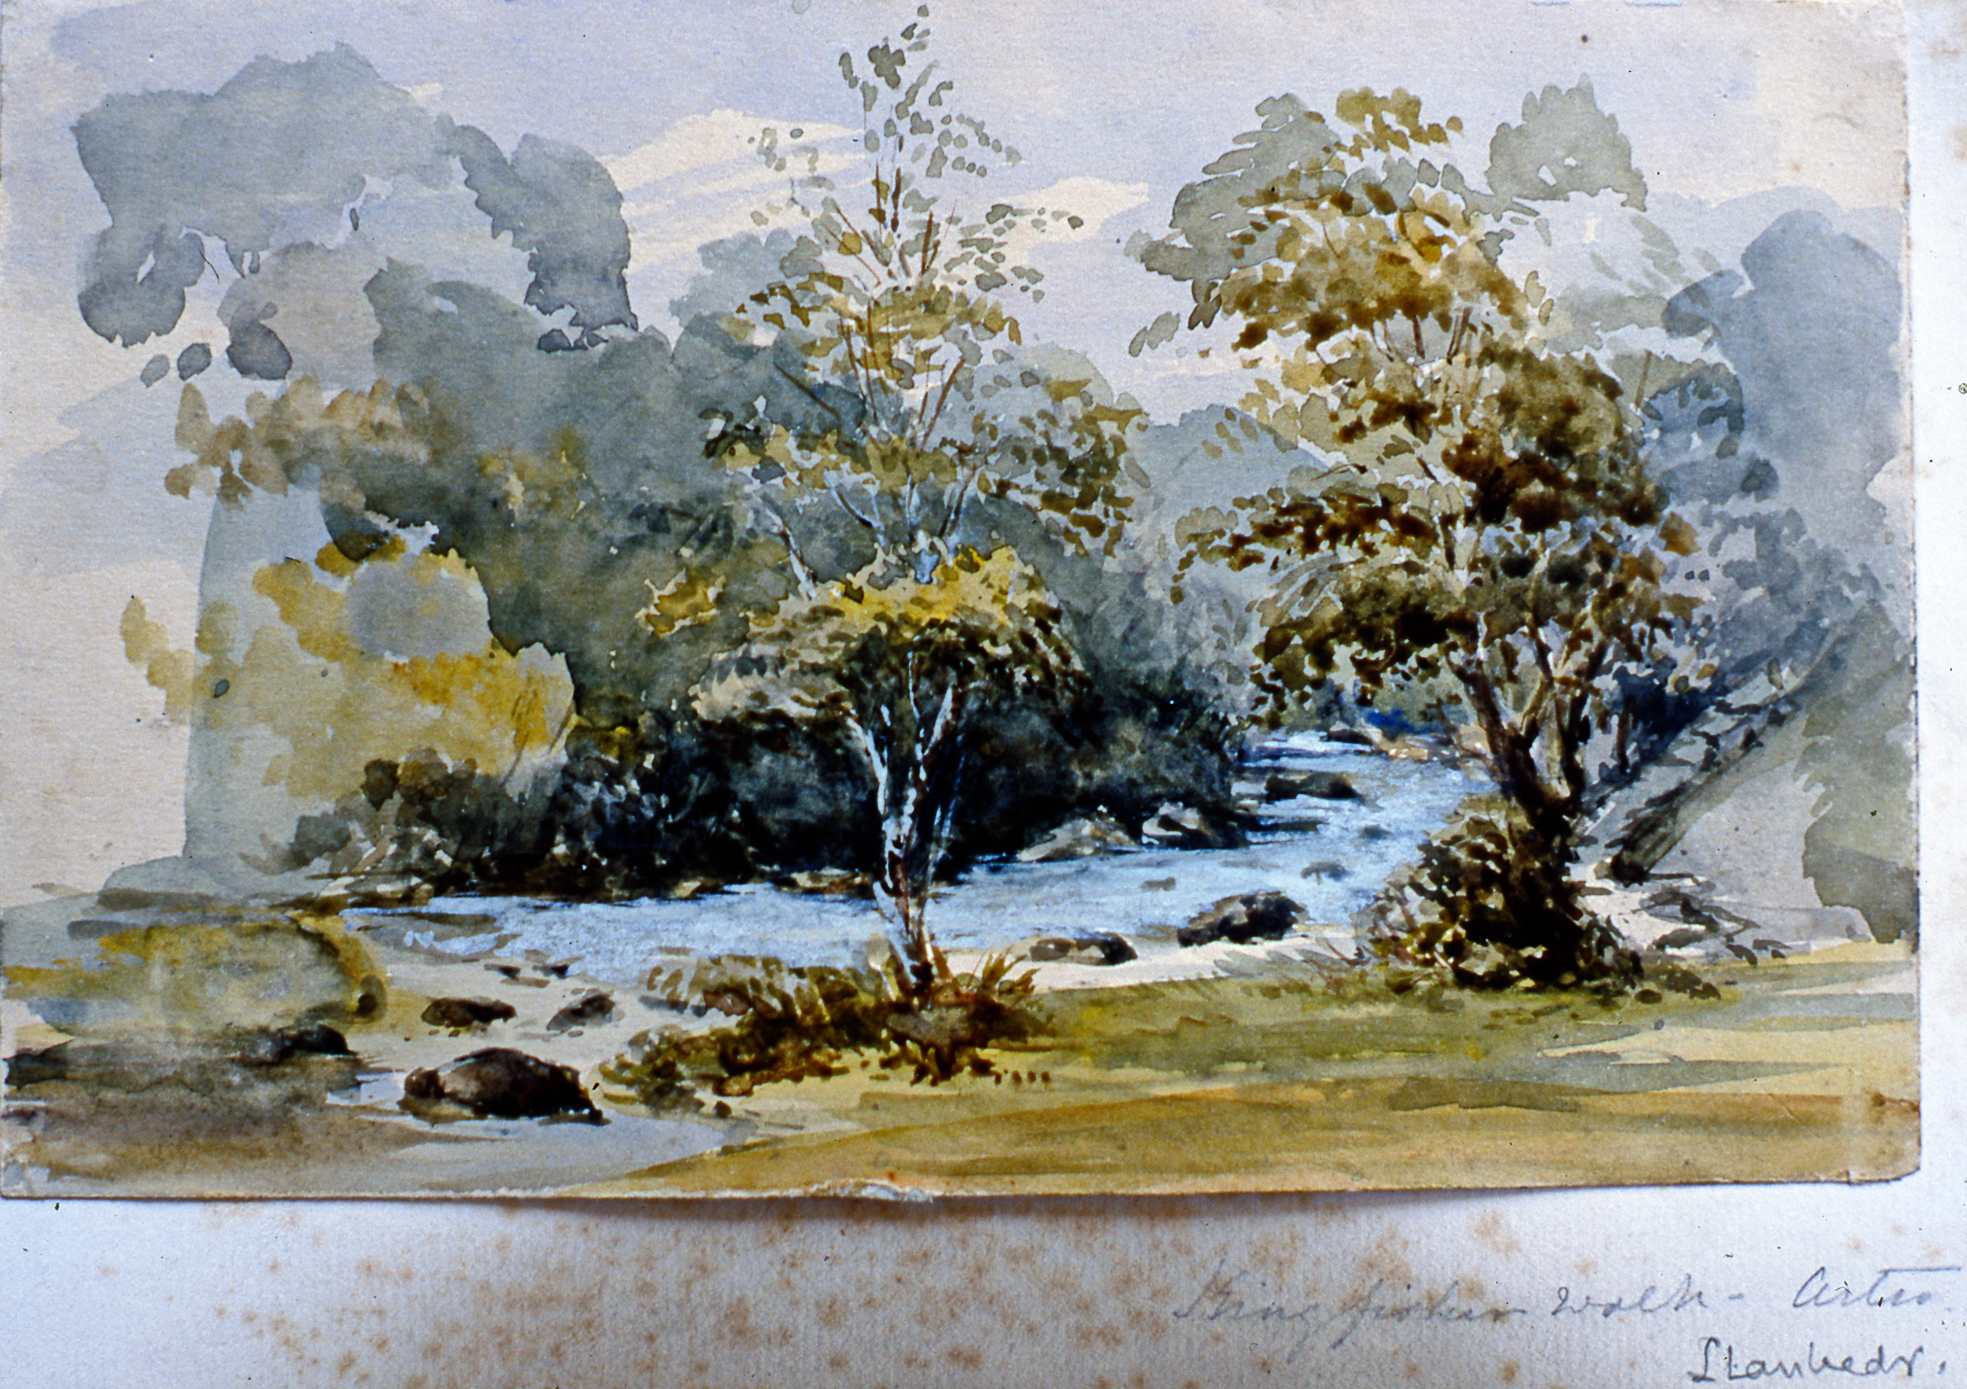 """Kingfisher Walk - Artro. Danbeds (?) , n.d.,Julia Bullock Webster, watercolour on paper, 4 7/8""""x 7 7/8"""", 2003.02.51, gift of The Grist Mill at Keremeos"""